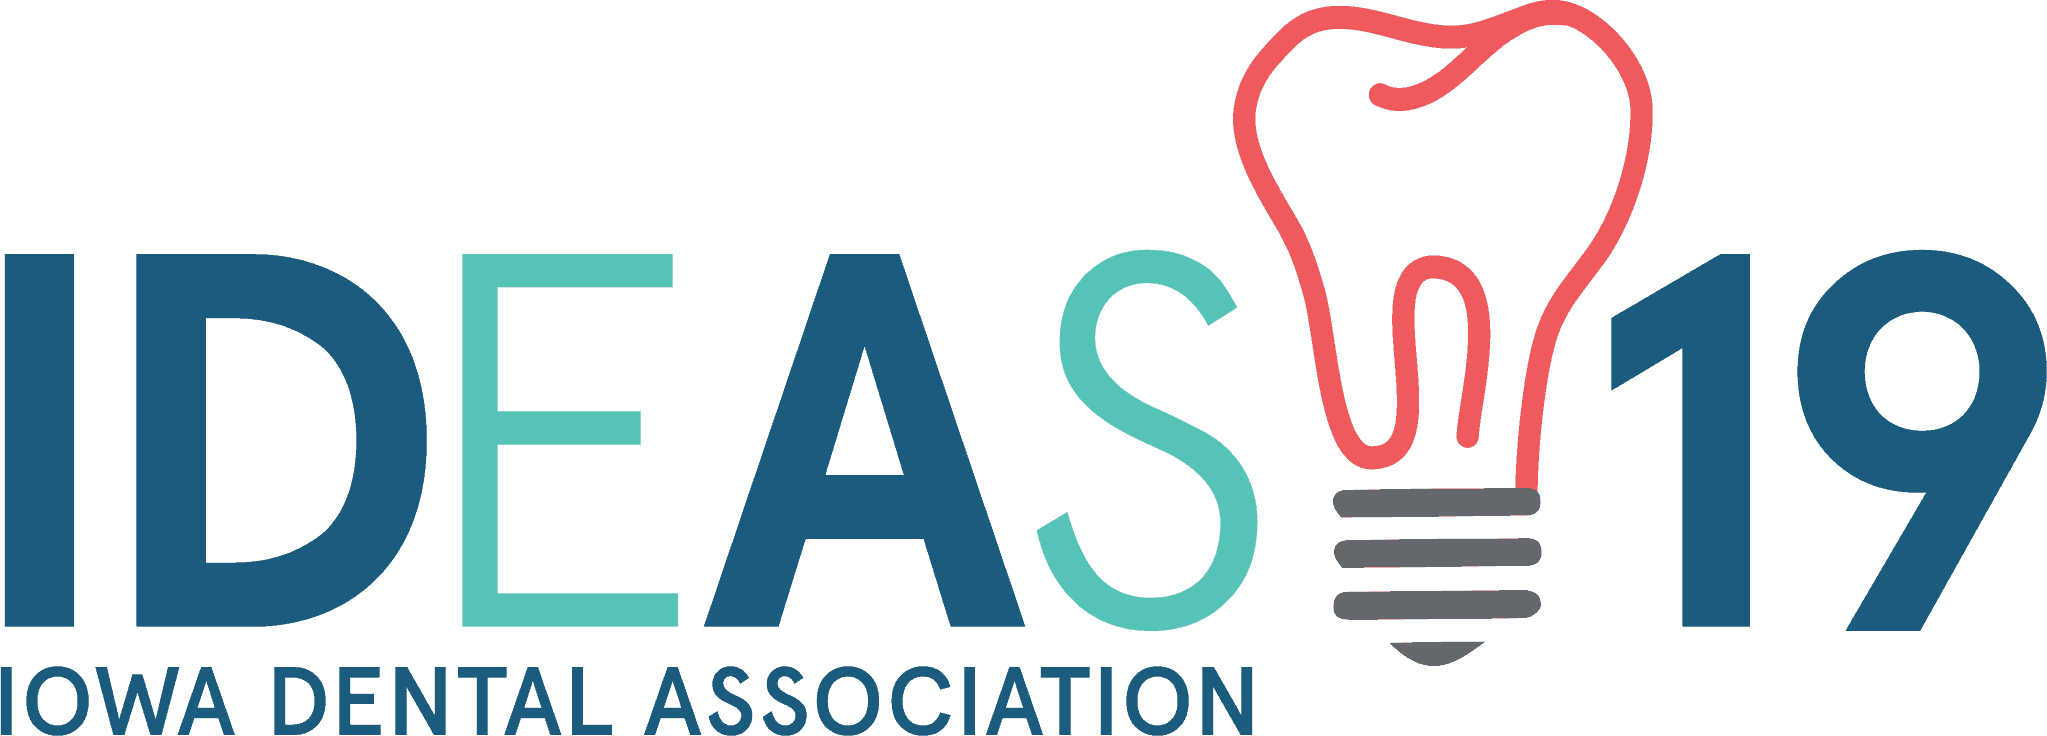 ideas19 Logo - Iowa Dental Association